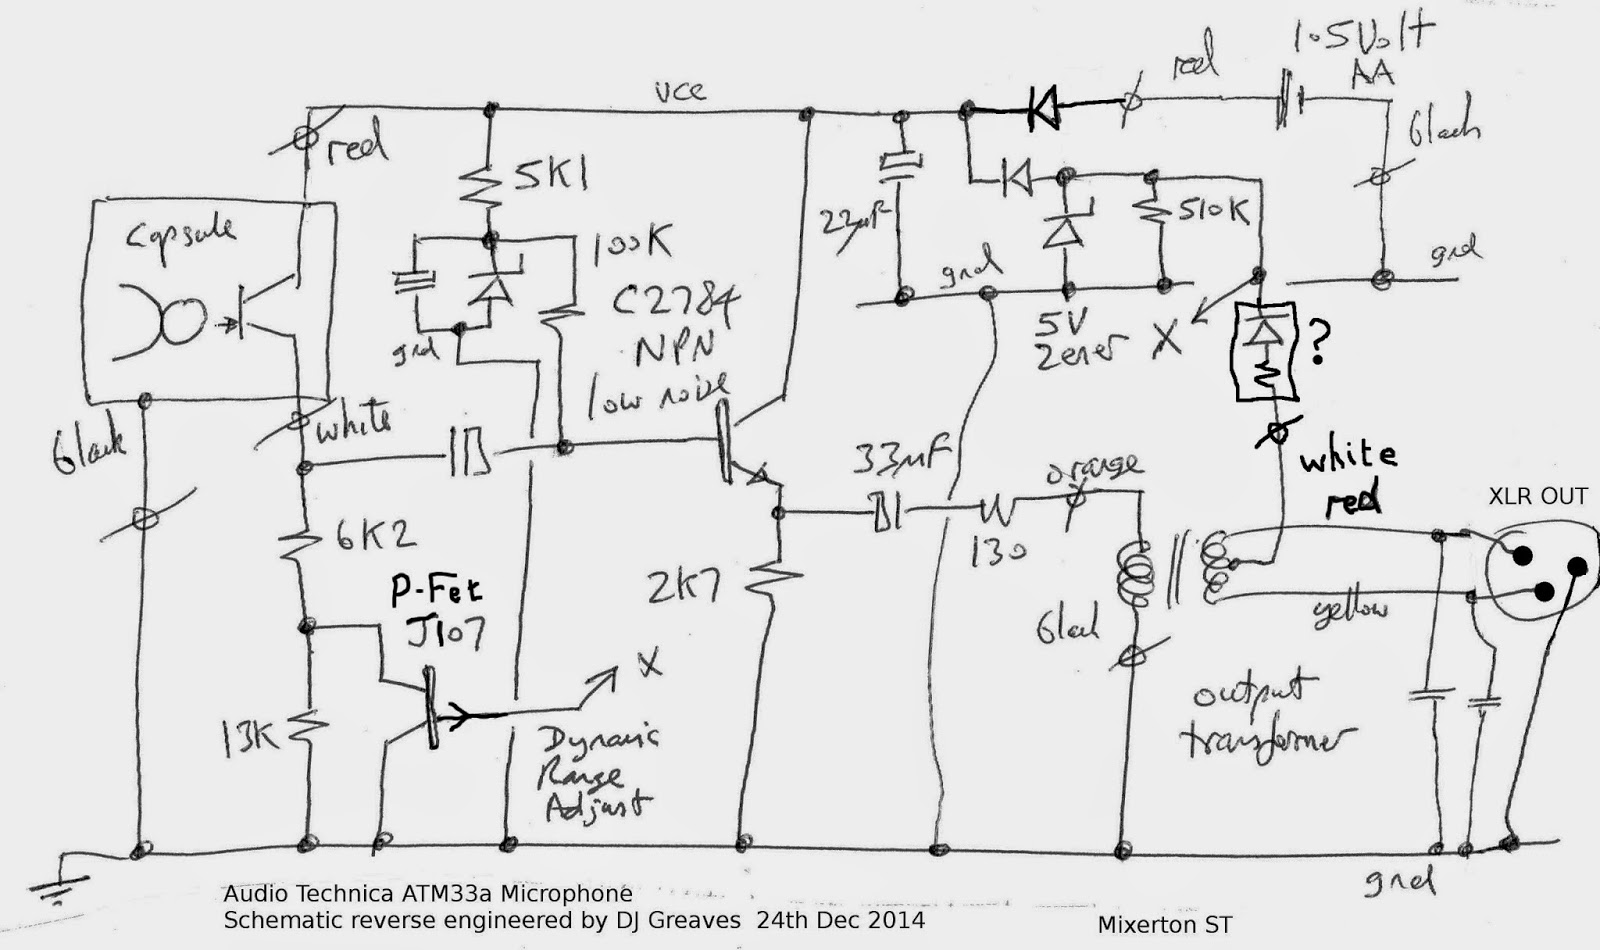 [DIAGRAM] Wiring Diagram For Signal Stat 700 FULL Version